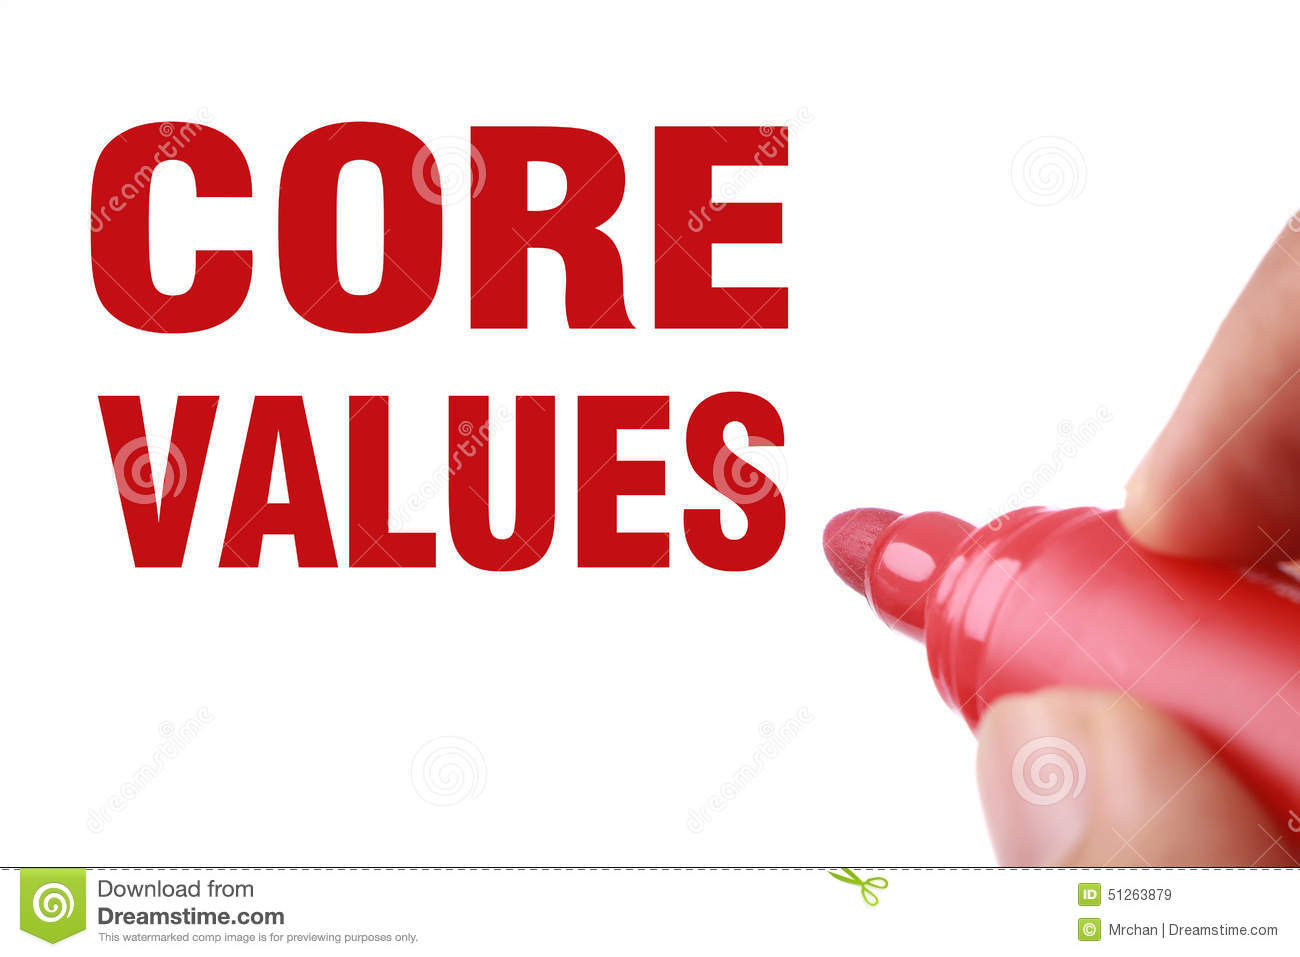 Army core values essay